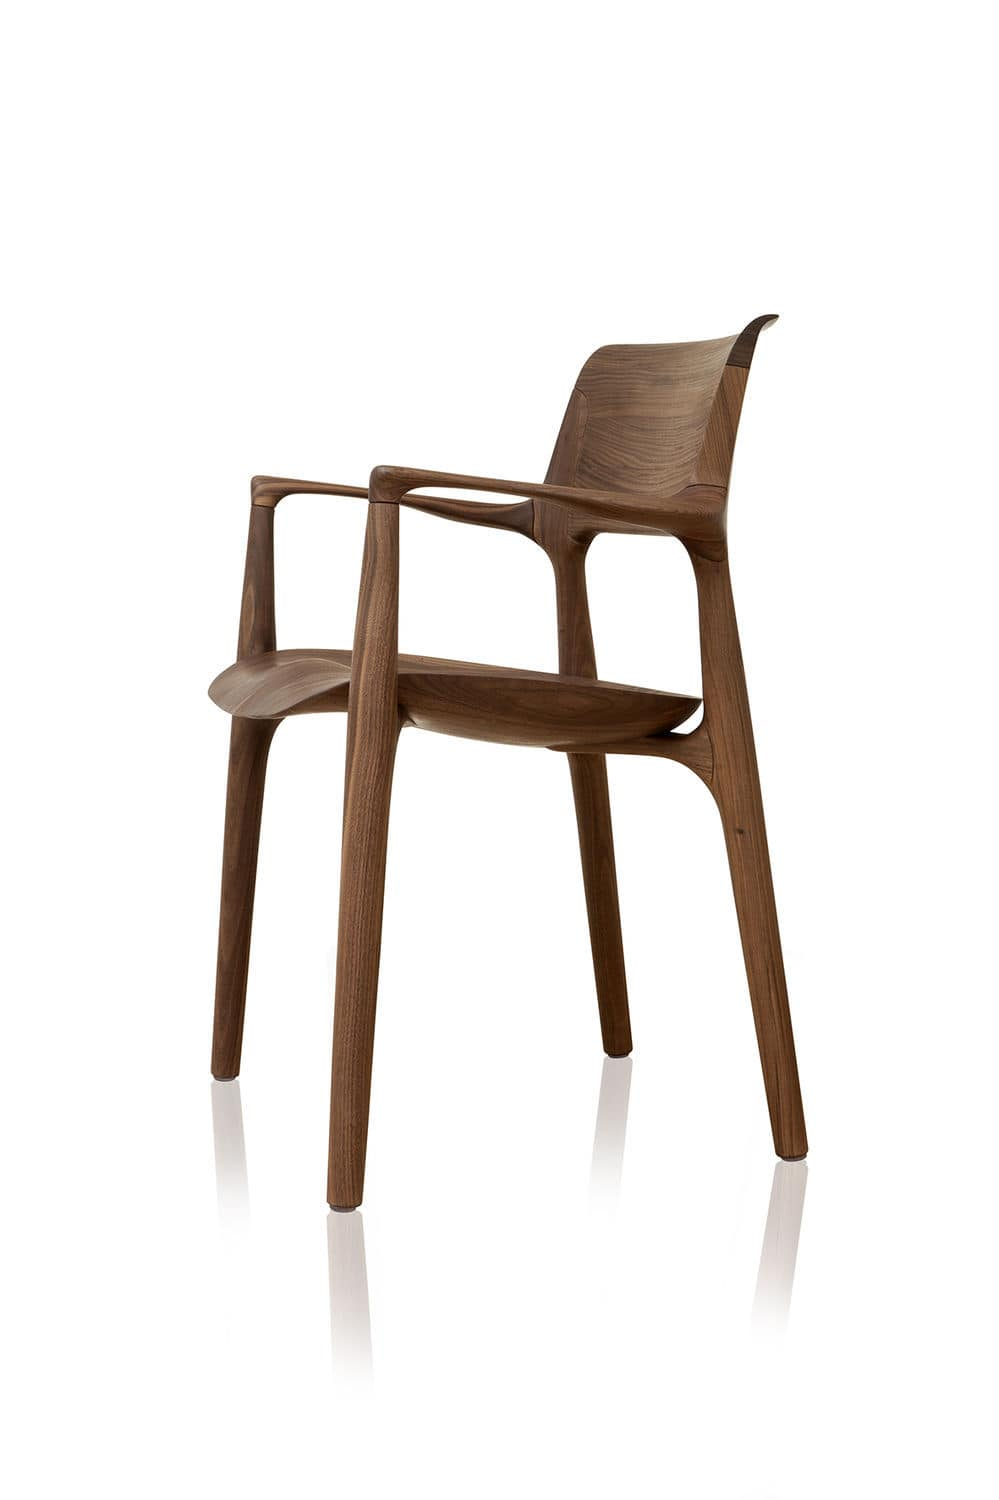 Wooden chairs with armrest - Contemporary Chair Bentwood Wooden Upholstered Easy By Jader Almeida